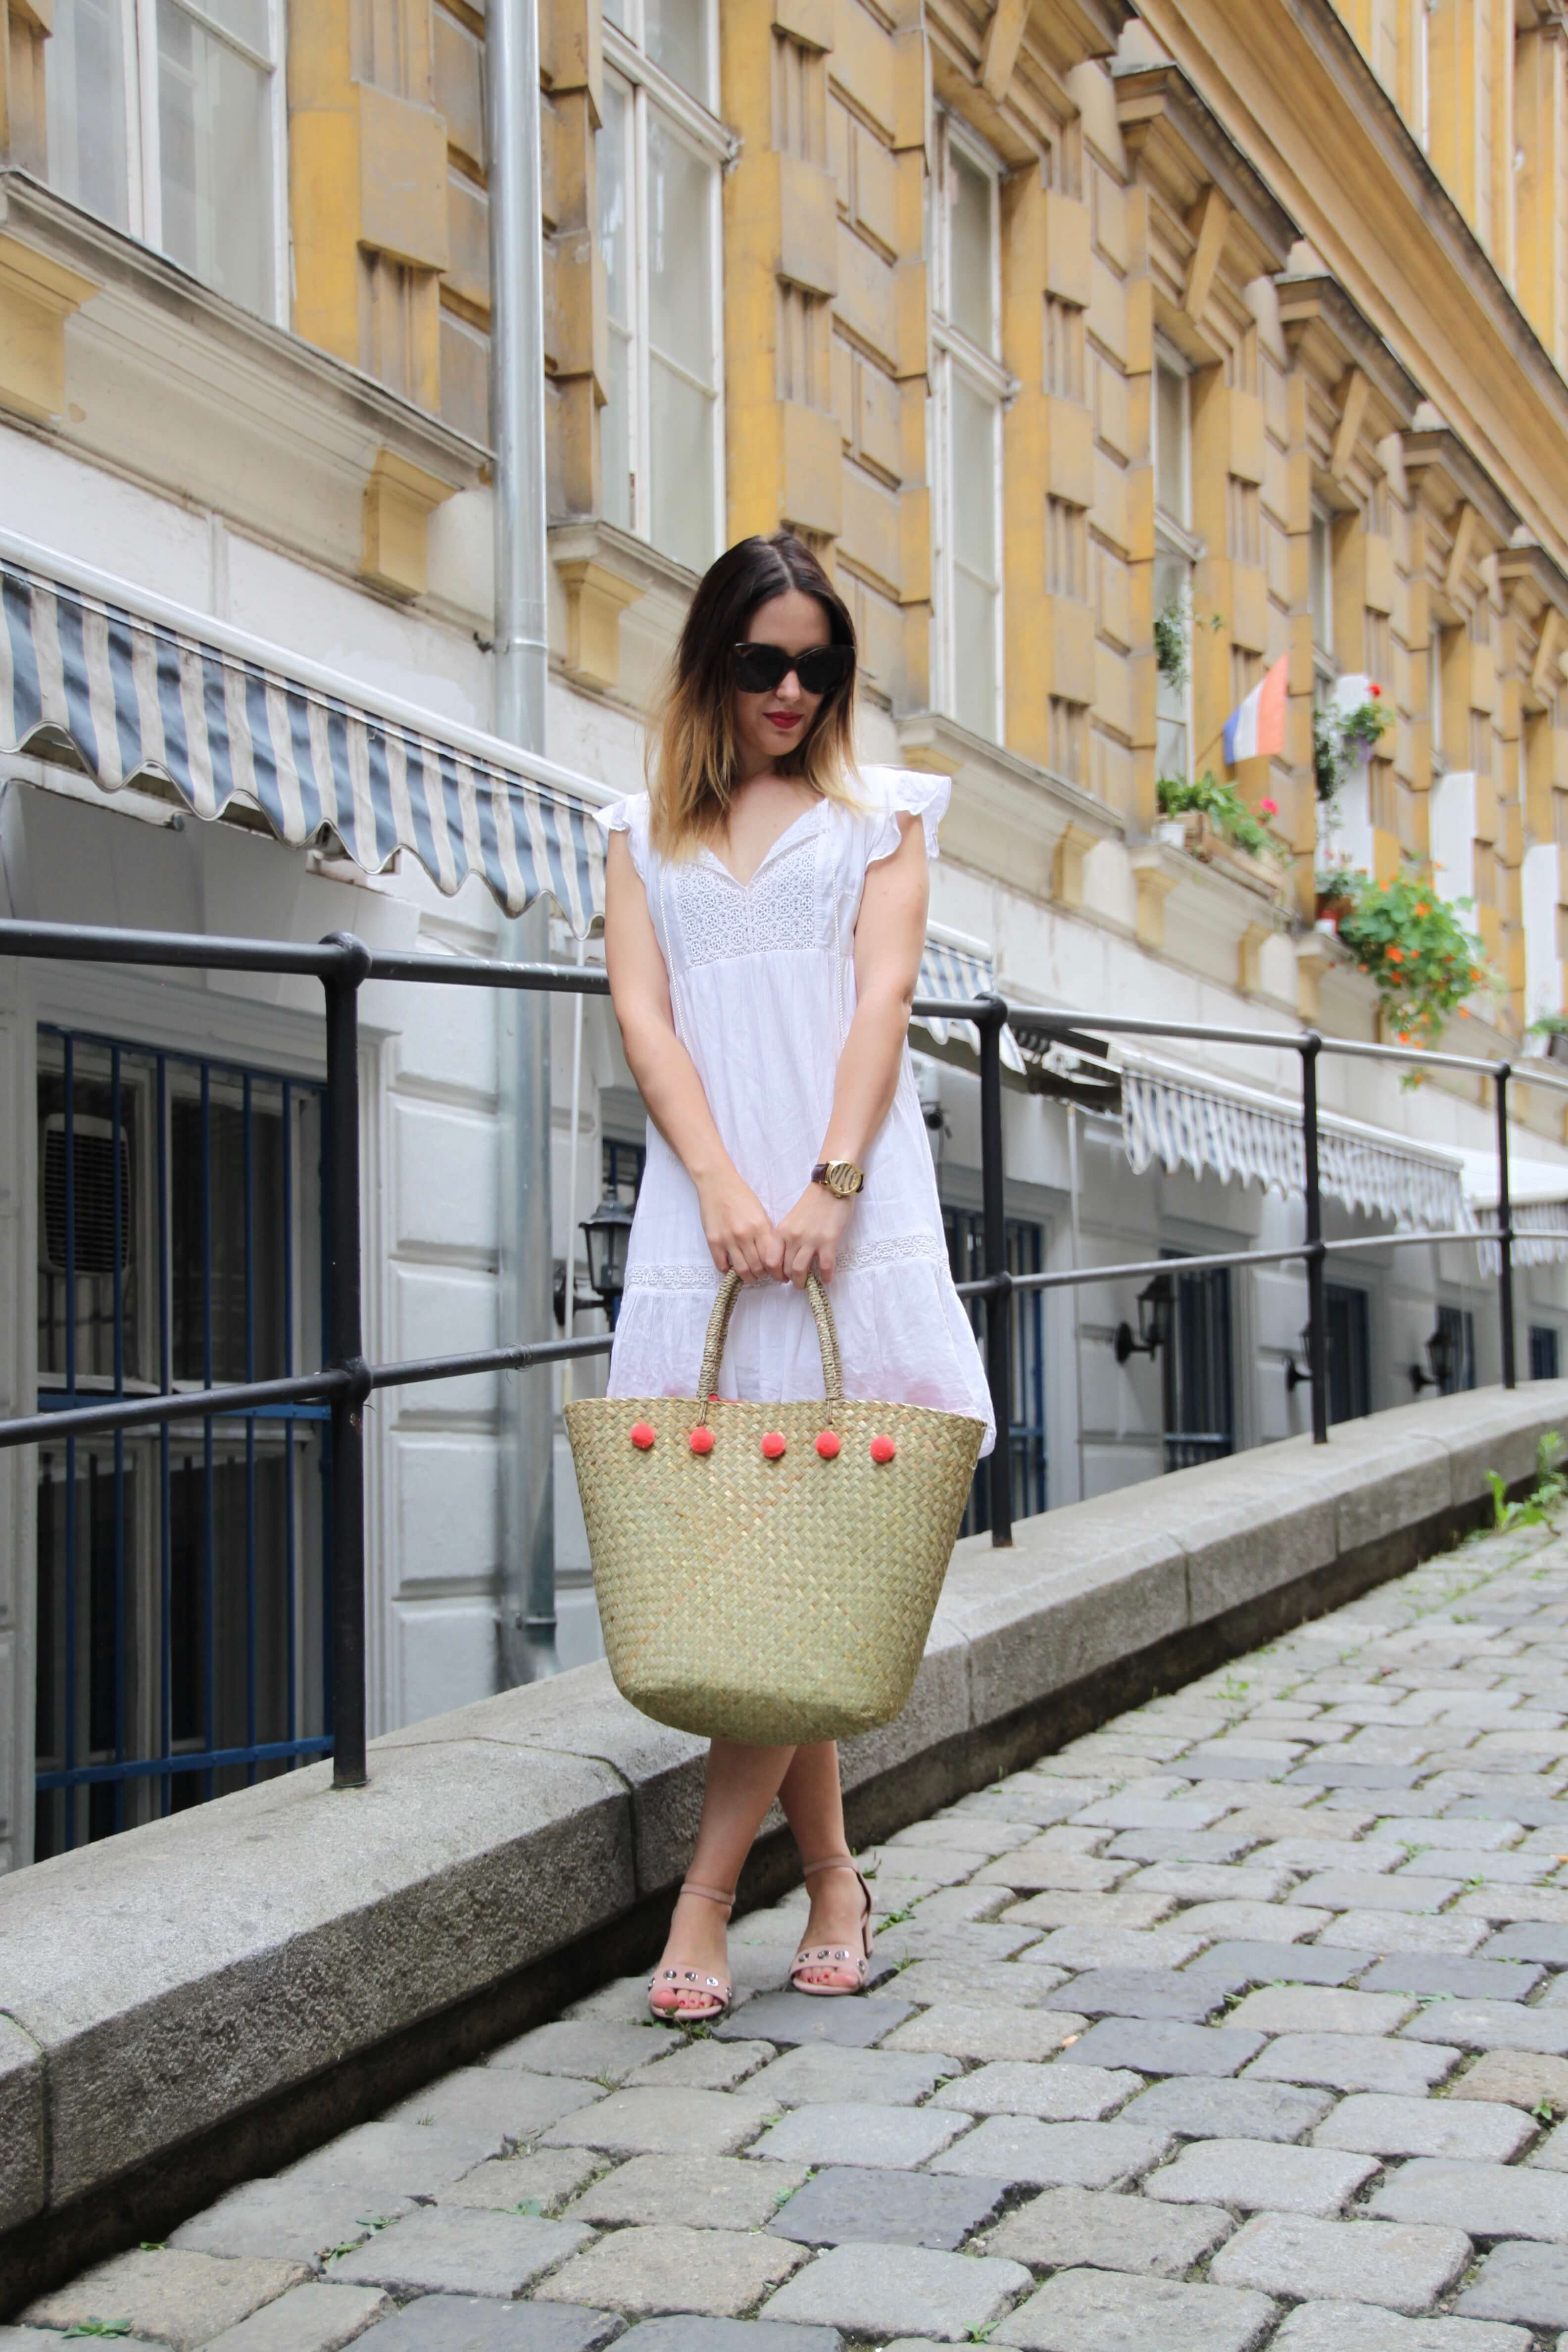 OTDS - Straw Bags Summeroutfit with straw bag